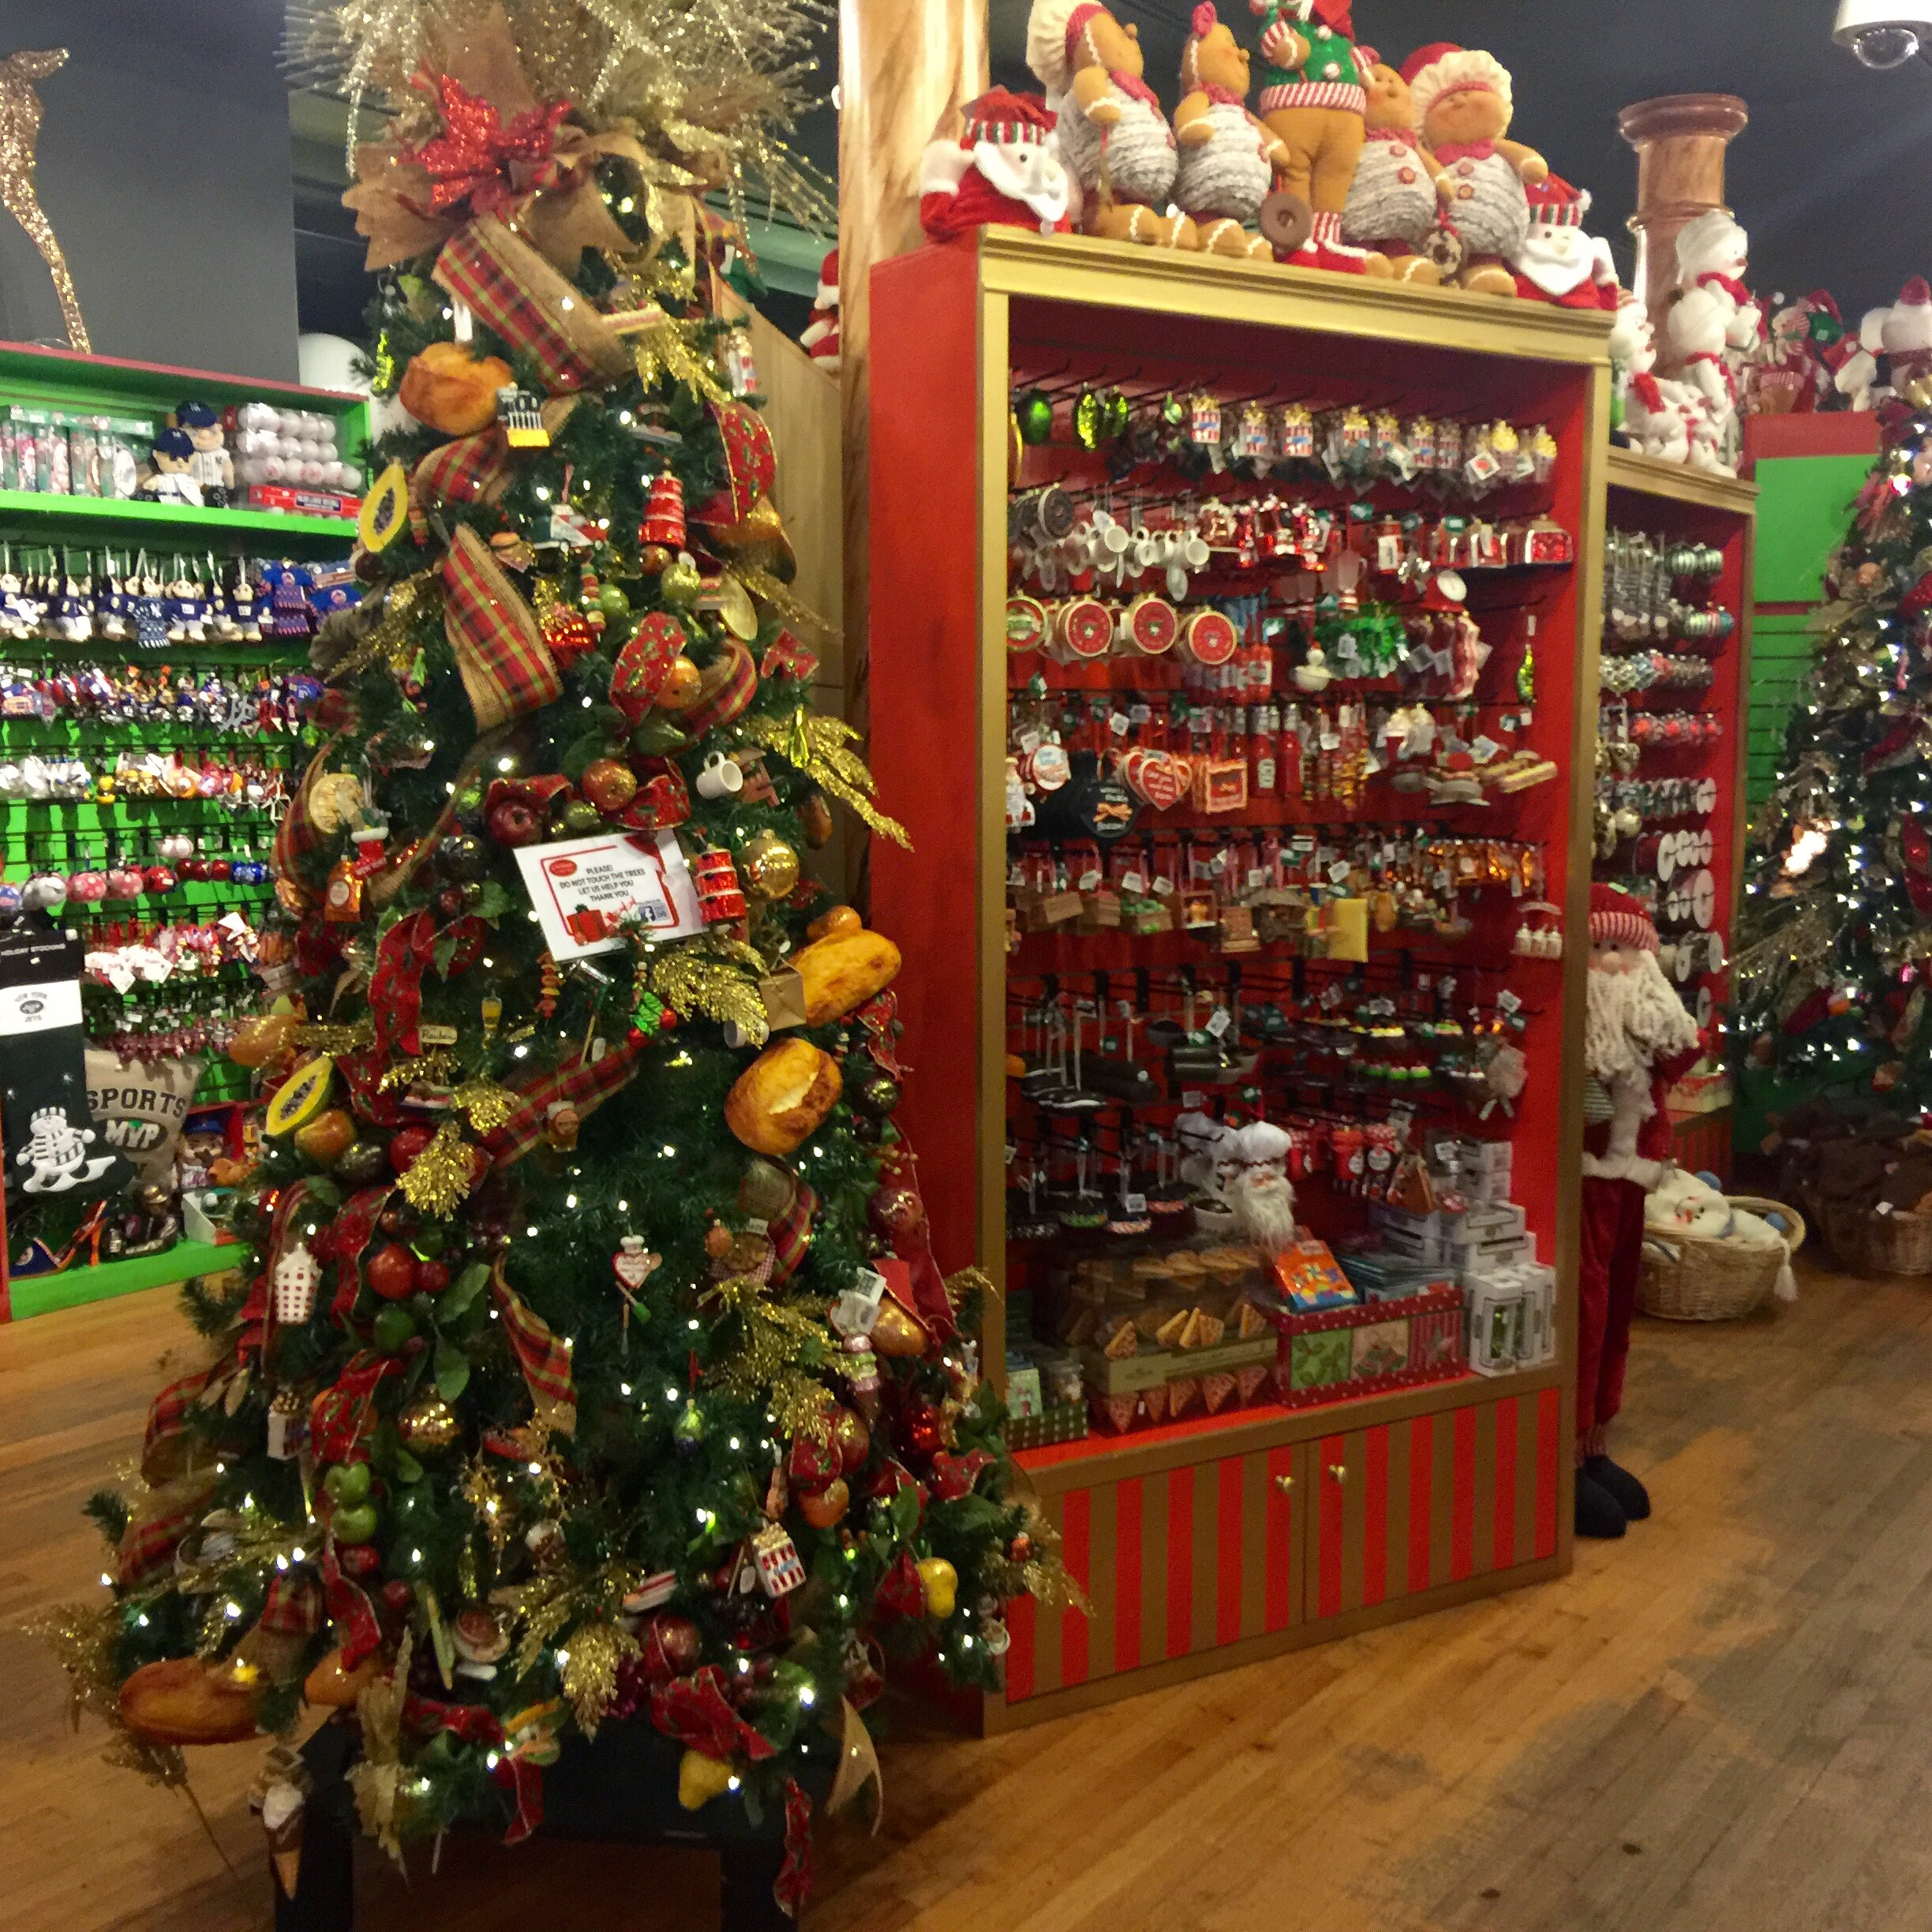 Christmas Decoration Stores: The Christmas Store New York Where It's Christmas Every